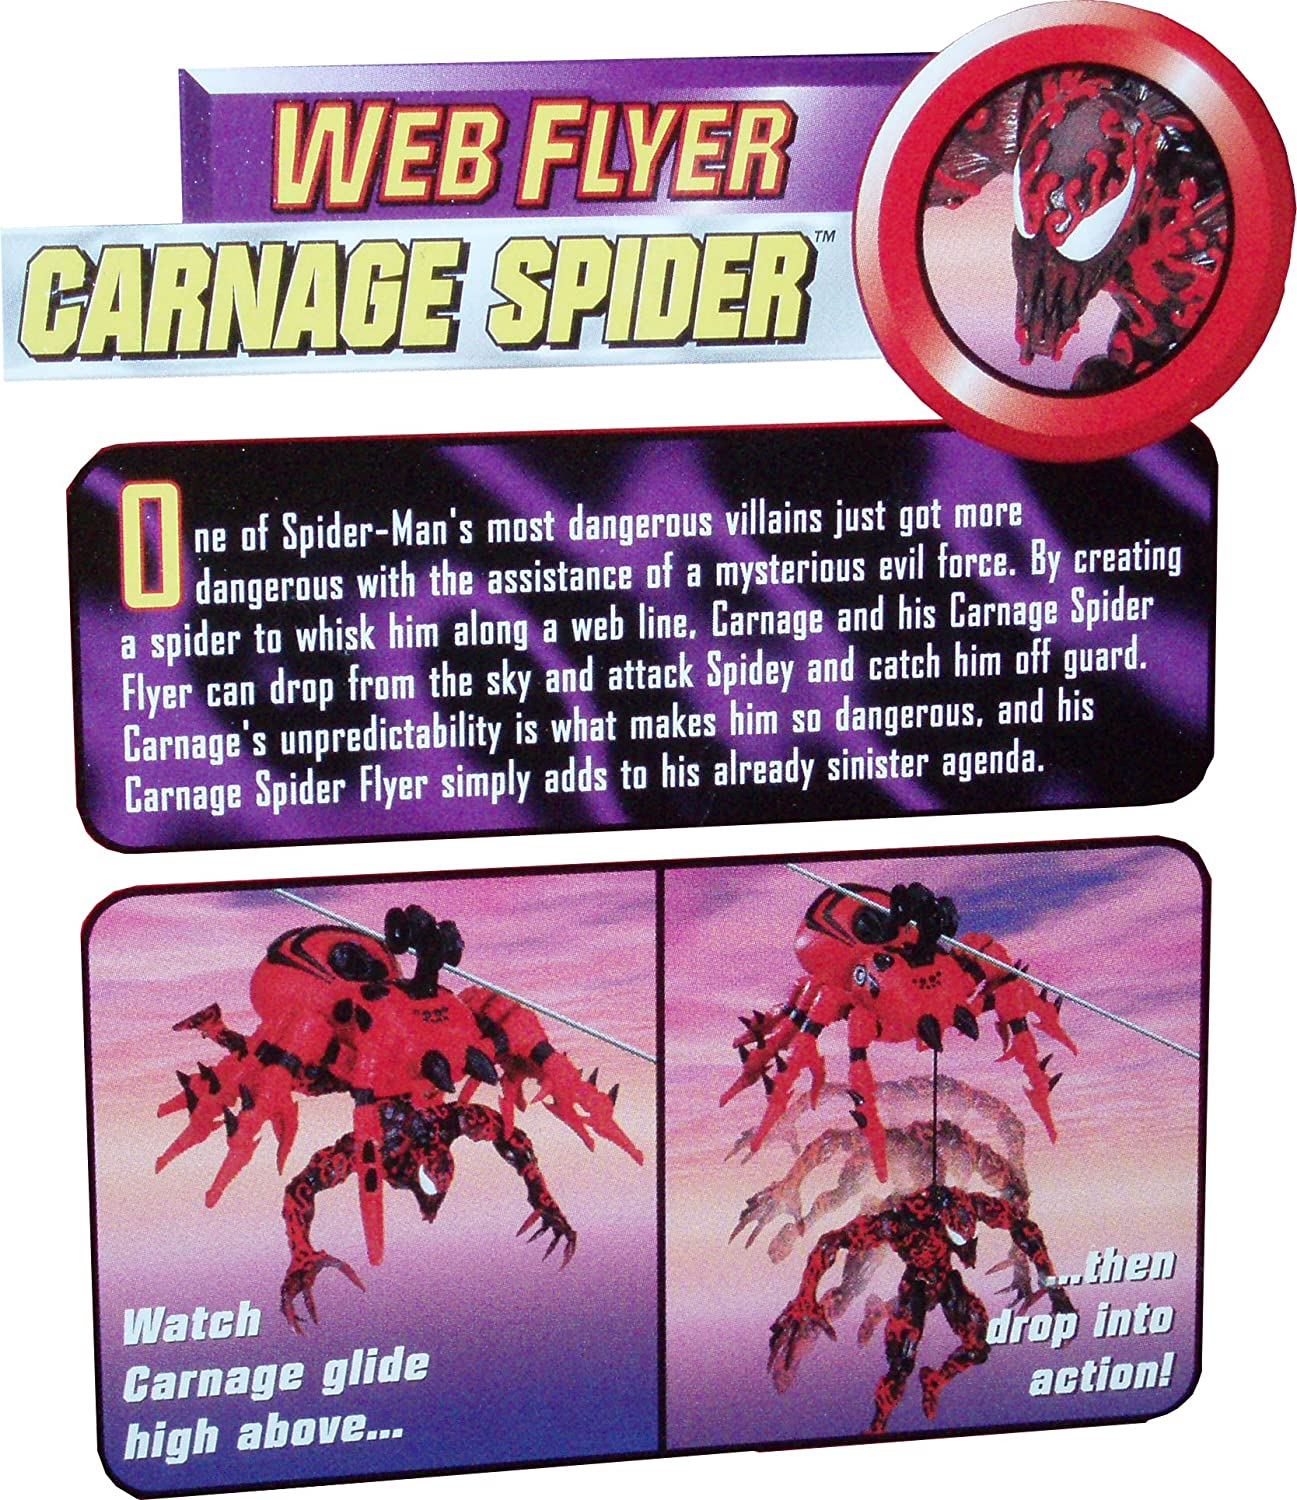 Spider-Man Sneak Attack: Web Flyers: Carnage Spider con Carnage Flyer Plus Sneak Attack: Amazon.es: Juguetes y juegos